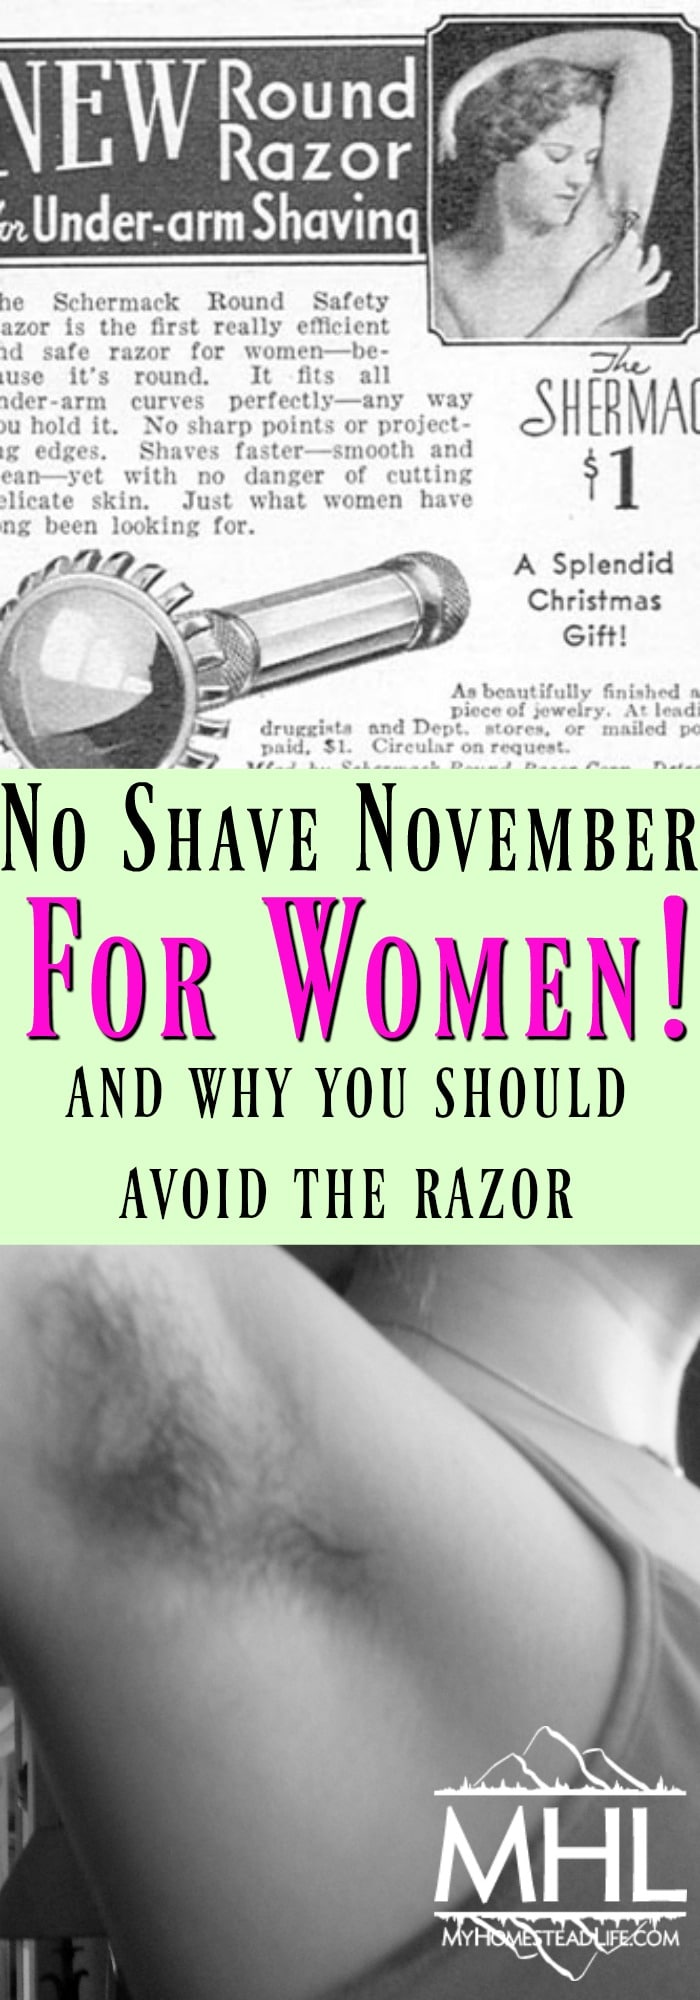 No Shave November- For Women! And Why YOU Should Avoid The Razor